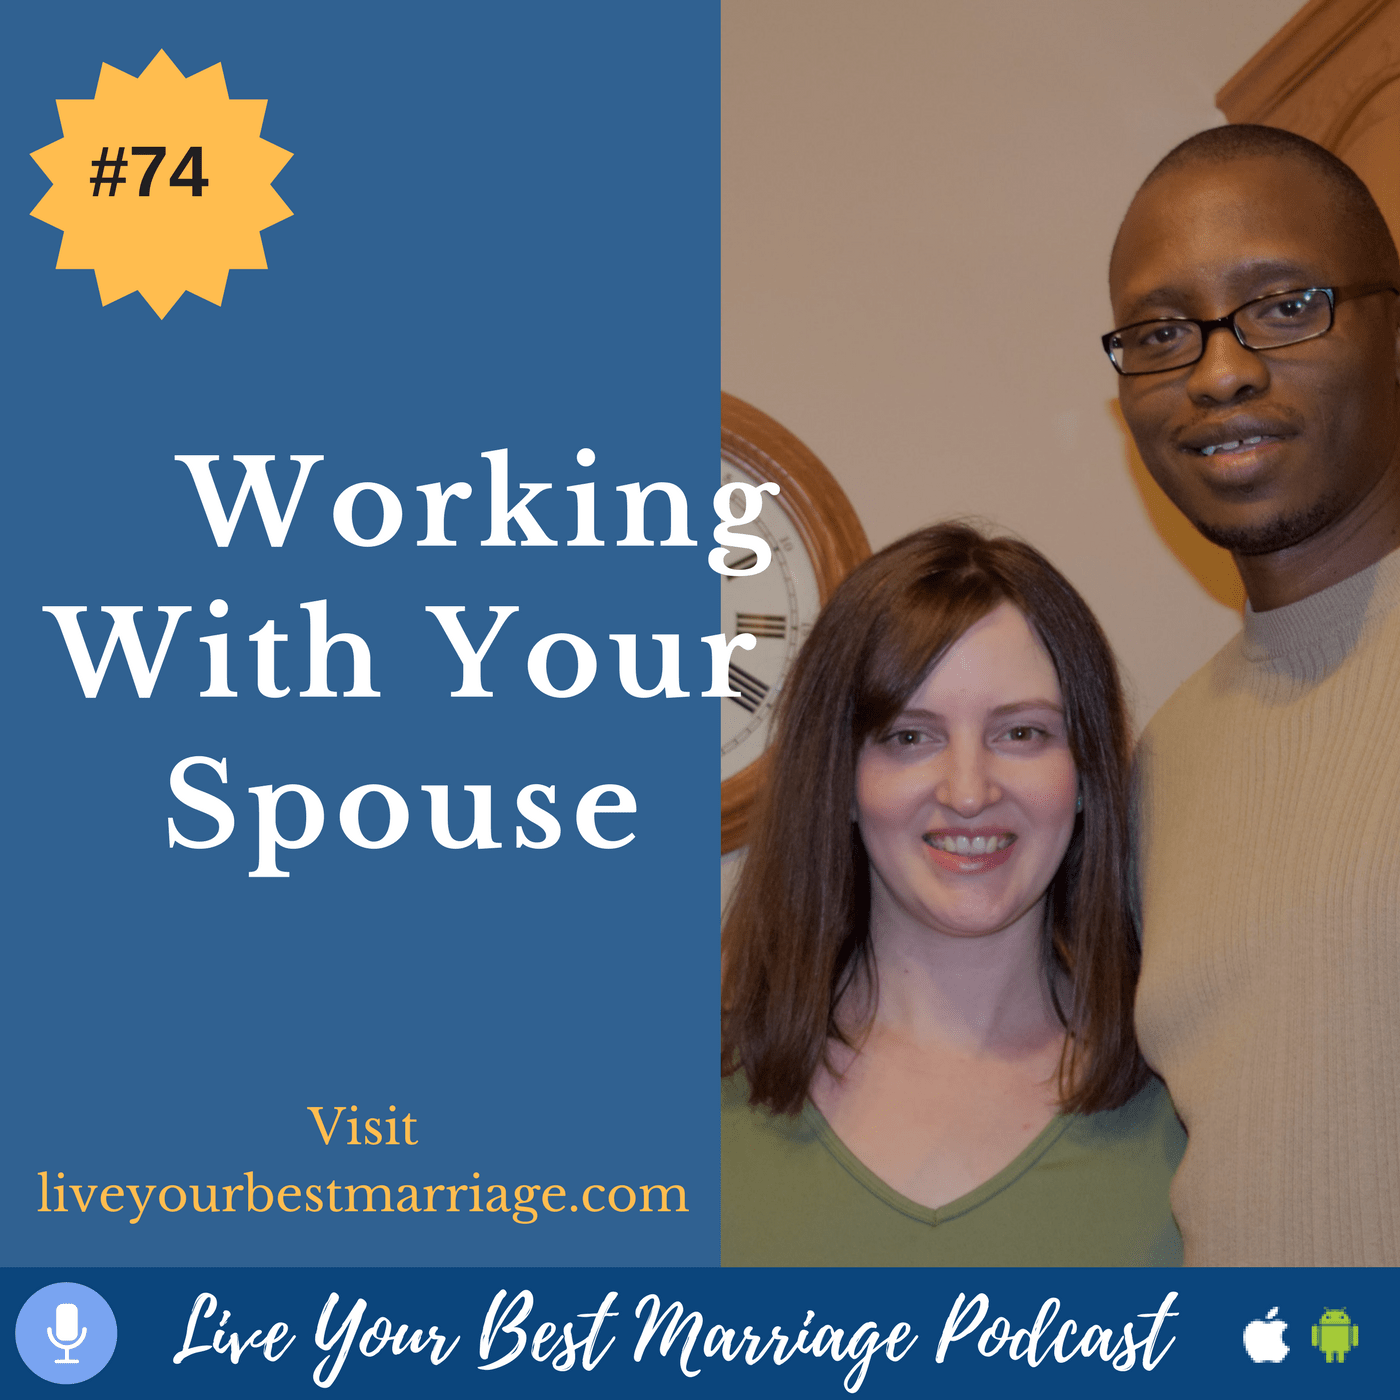 episode-74-working-with-your-spouse-audio_thumbnail.png